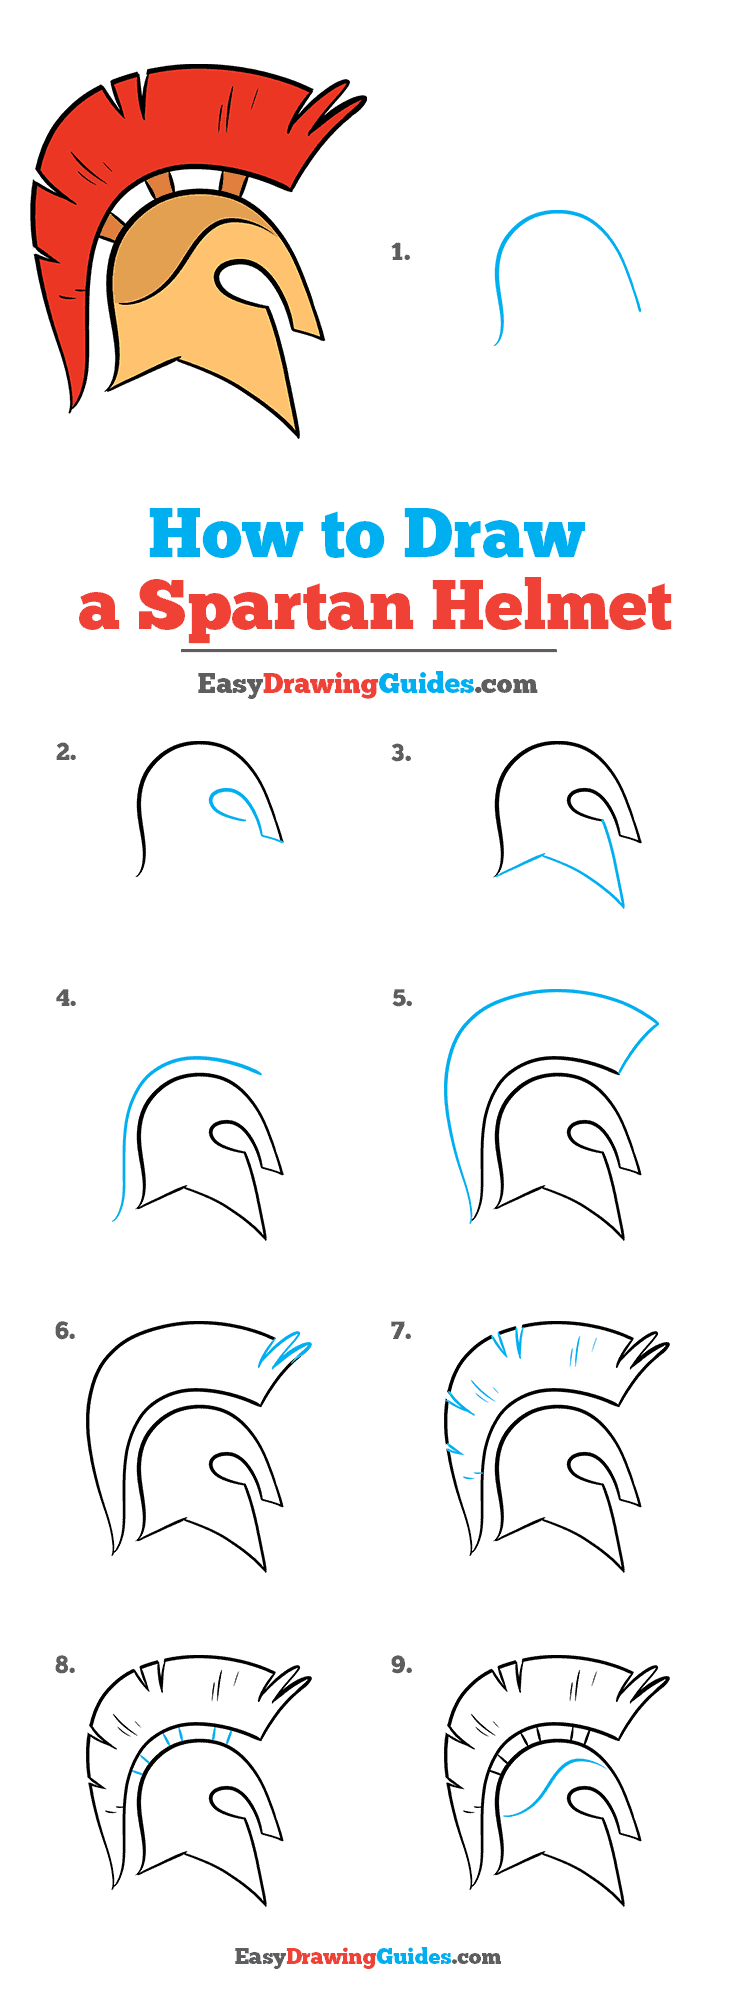 How to Draw Spartan Helmet